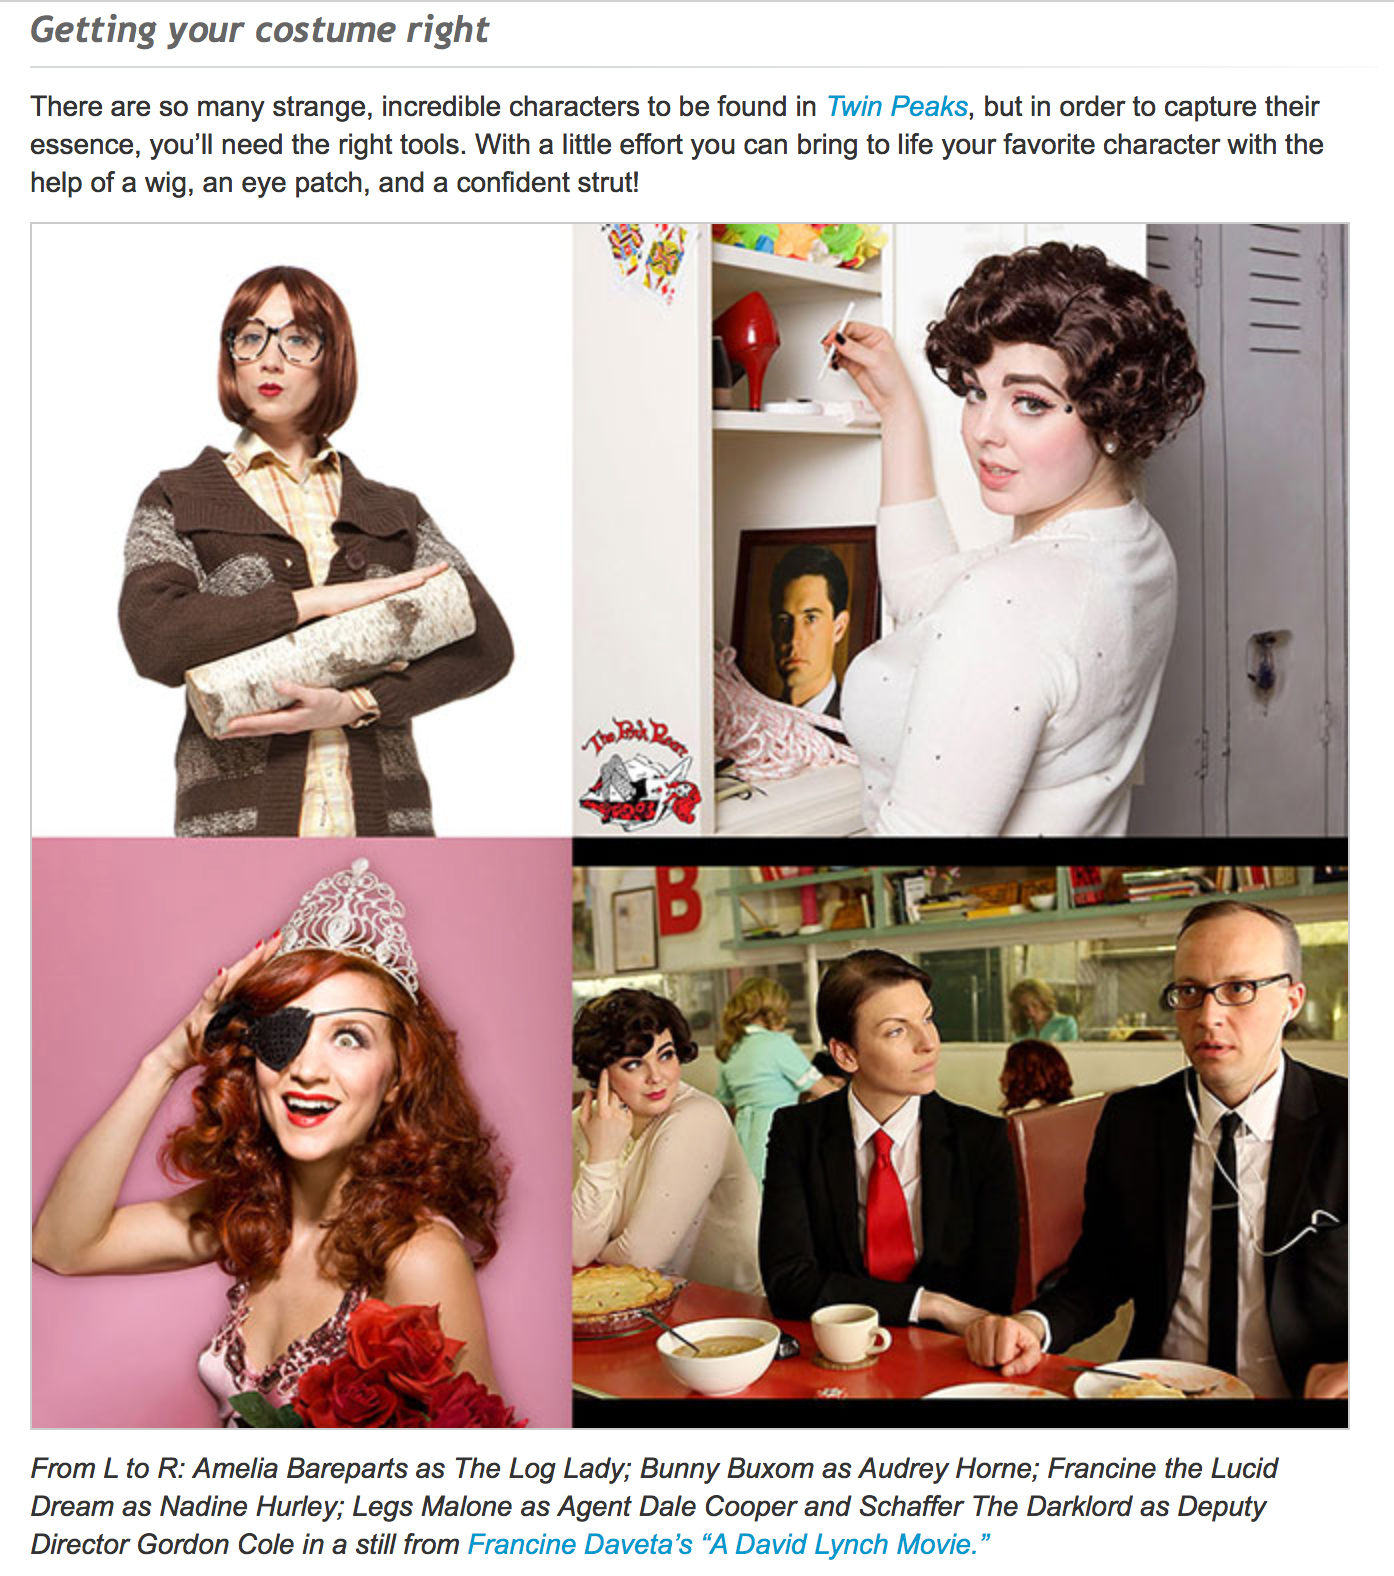 The Pink Room Burlesque assists DirecTV with how to throw an amazing Twin Peaks Party!